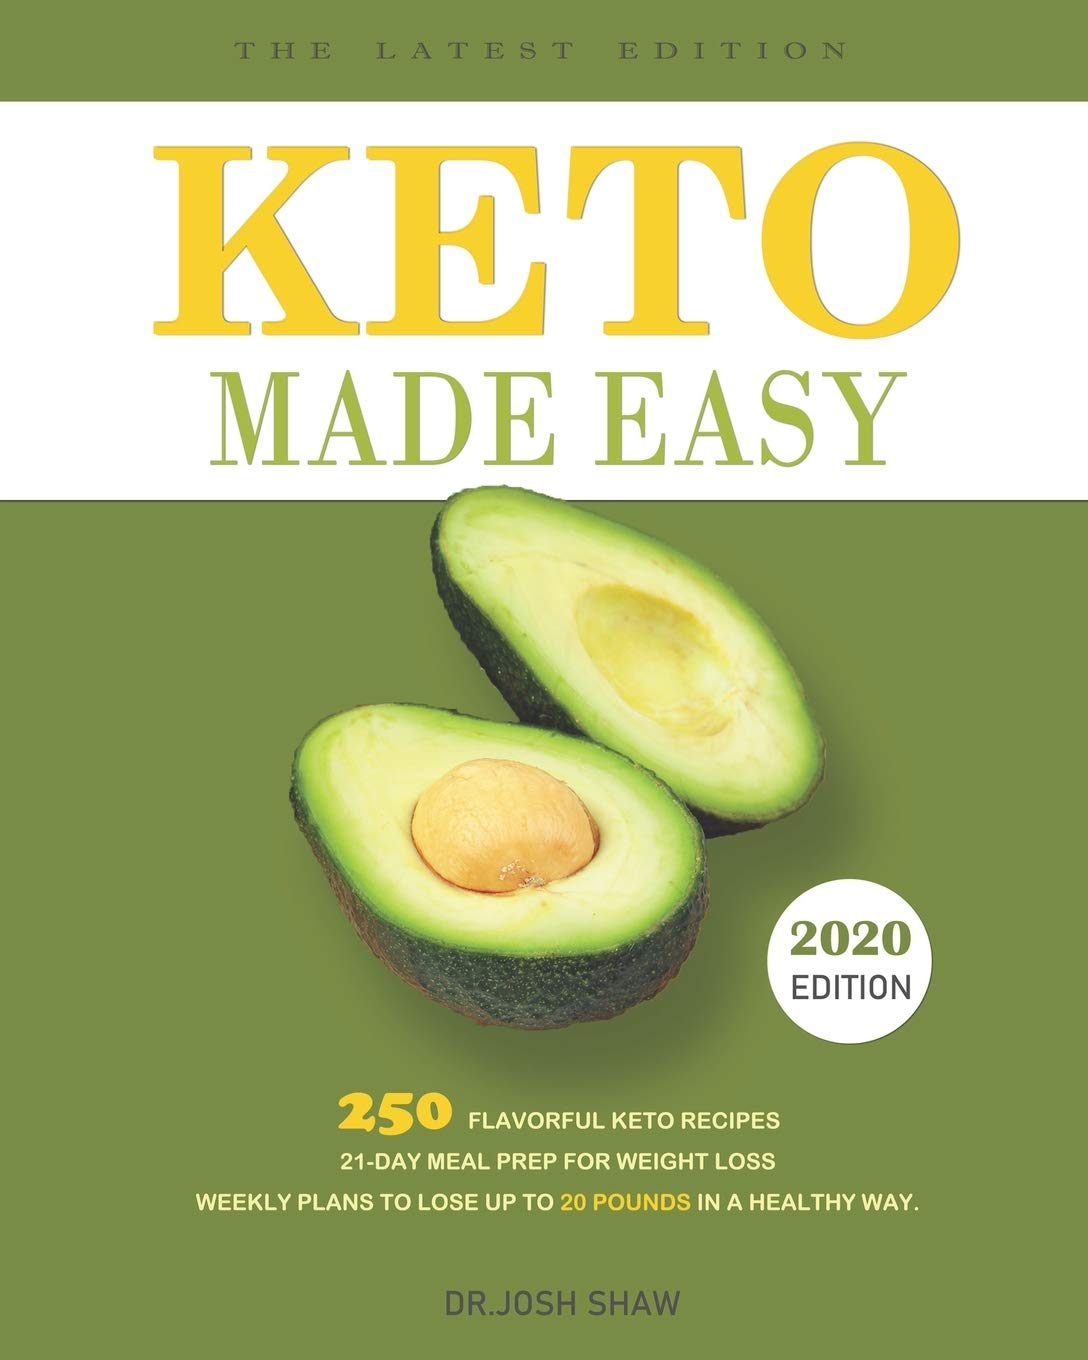 Keto Made Easy 250 Flavorful Keto Recipes 21 Day Meal Prep For Weight Loss Weekly Plans To Lose Up To 20 Pounds In A Healthy Way Shaw Dr Josh 9781701508262 Amazon Com Books